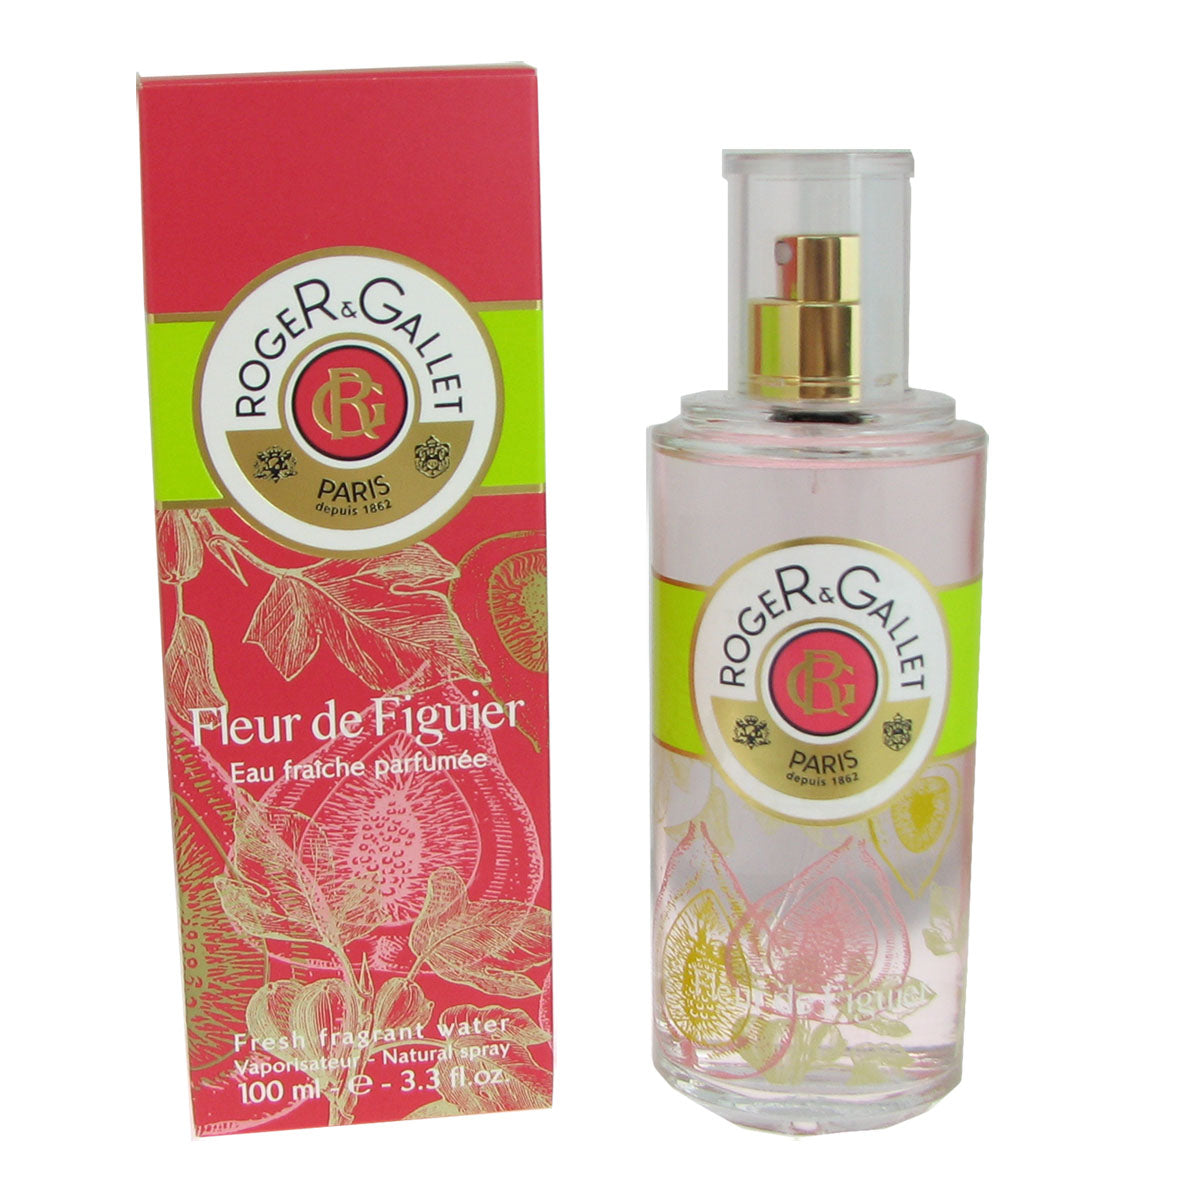 Fleur de Figuier for Women By Roger & Gallet 3.3 oz 100ml Fresh Fragrant Water Spray